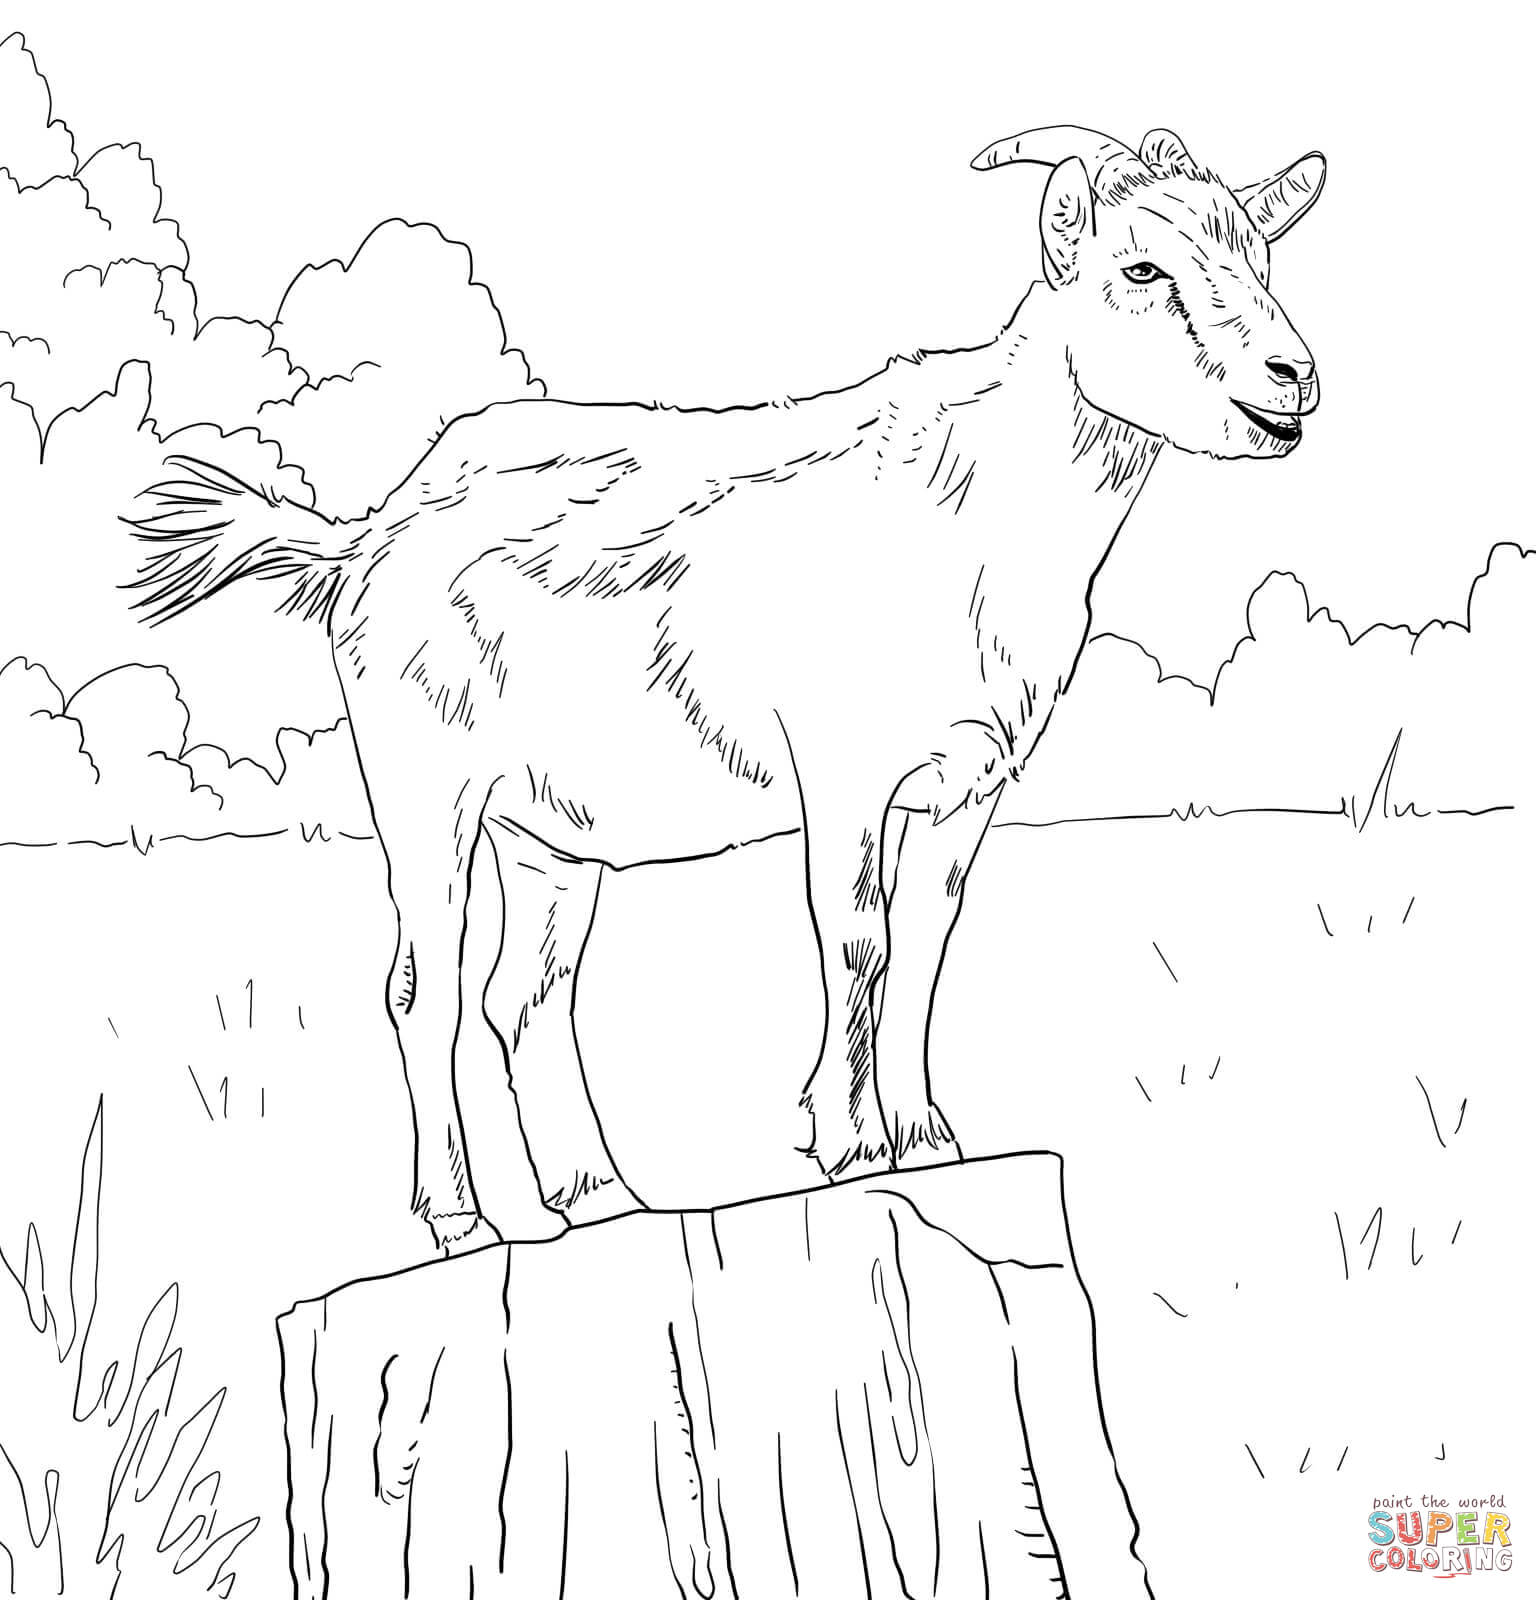 goat colouring picture 19 animal goats printable coloring sheet goat colouring picture